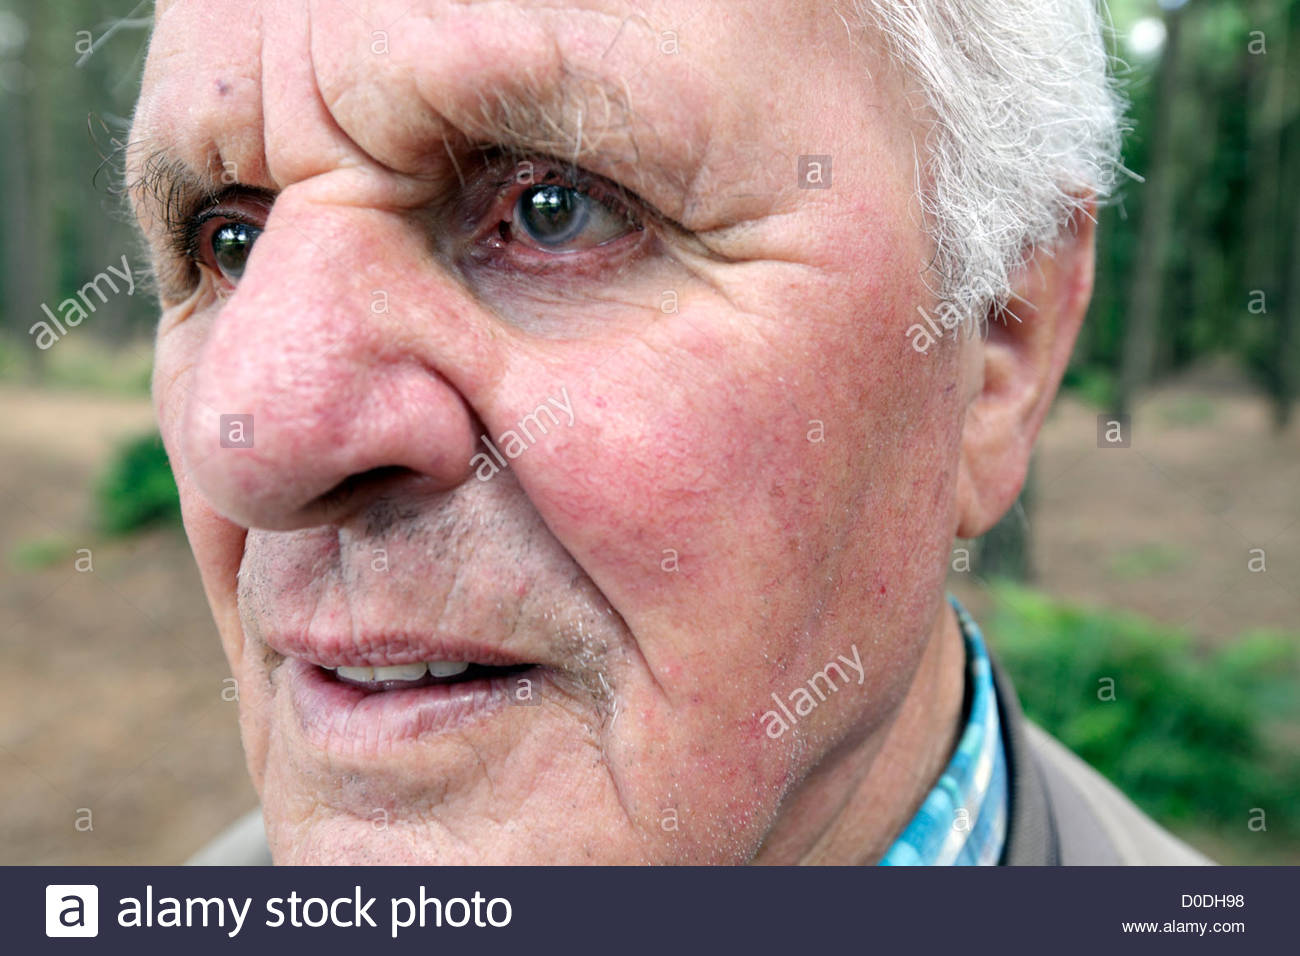 Superb Extreme Close Up Of A Senior Man In His 80S Stock Photo Royalty Hairstyles For Women Draintrainus